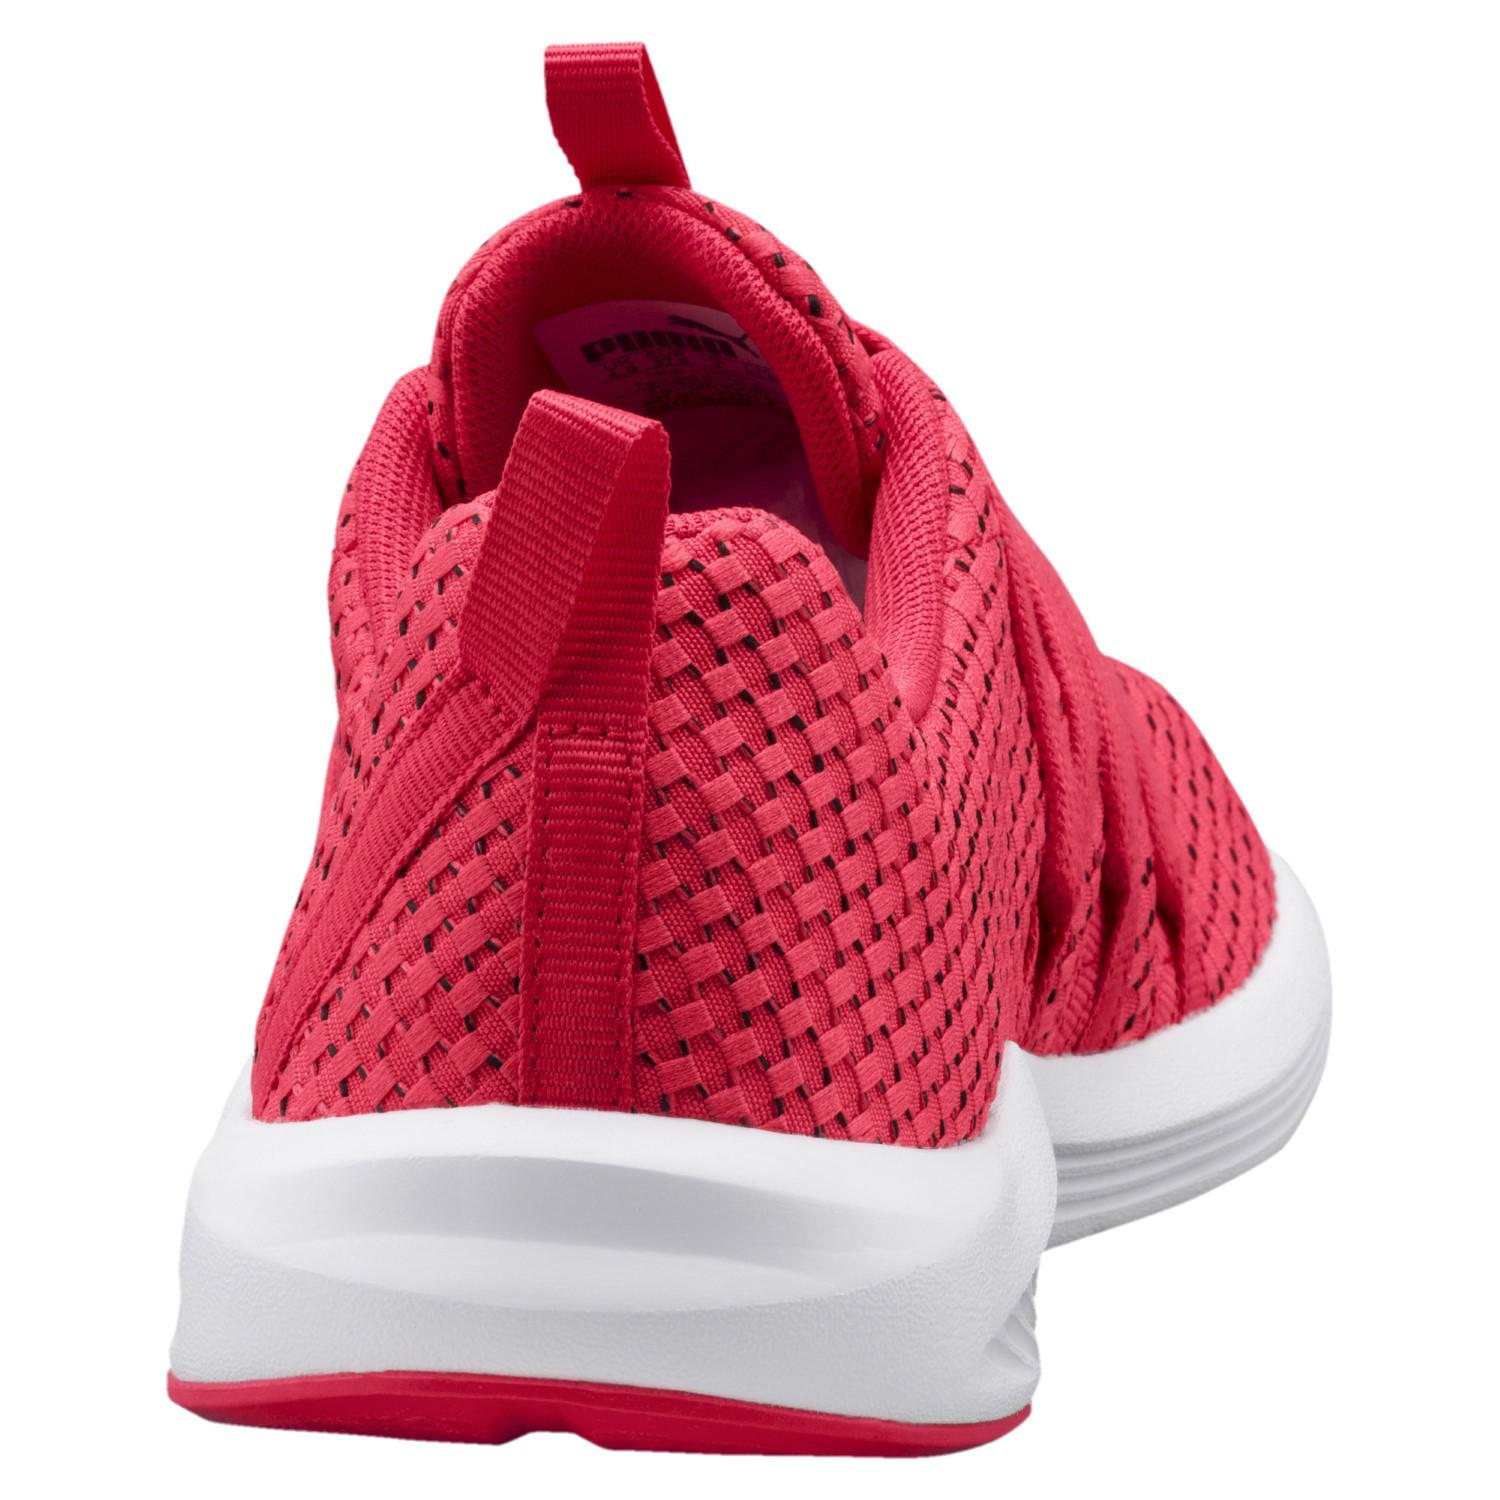 Lyst - PUMA Prowl Alt Weave Training Shoes in Pink cc8389809